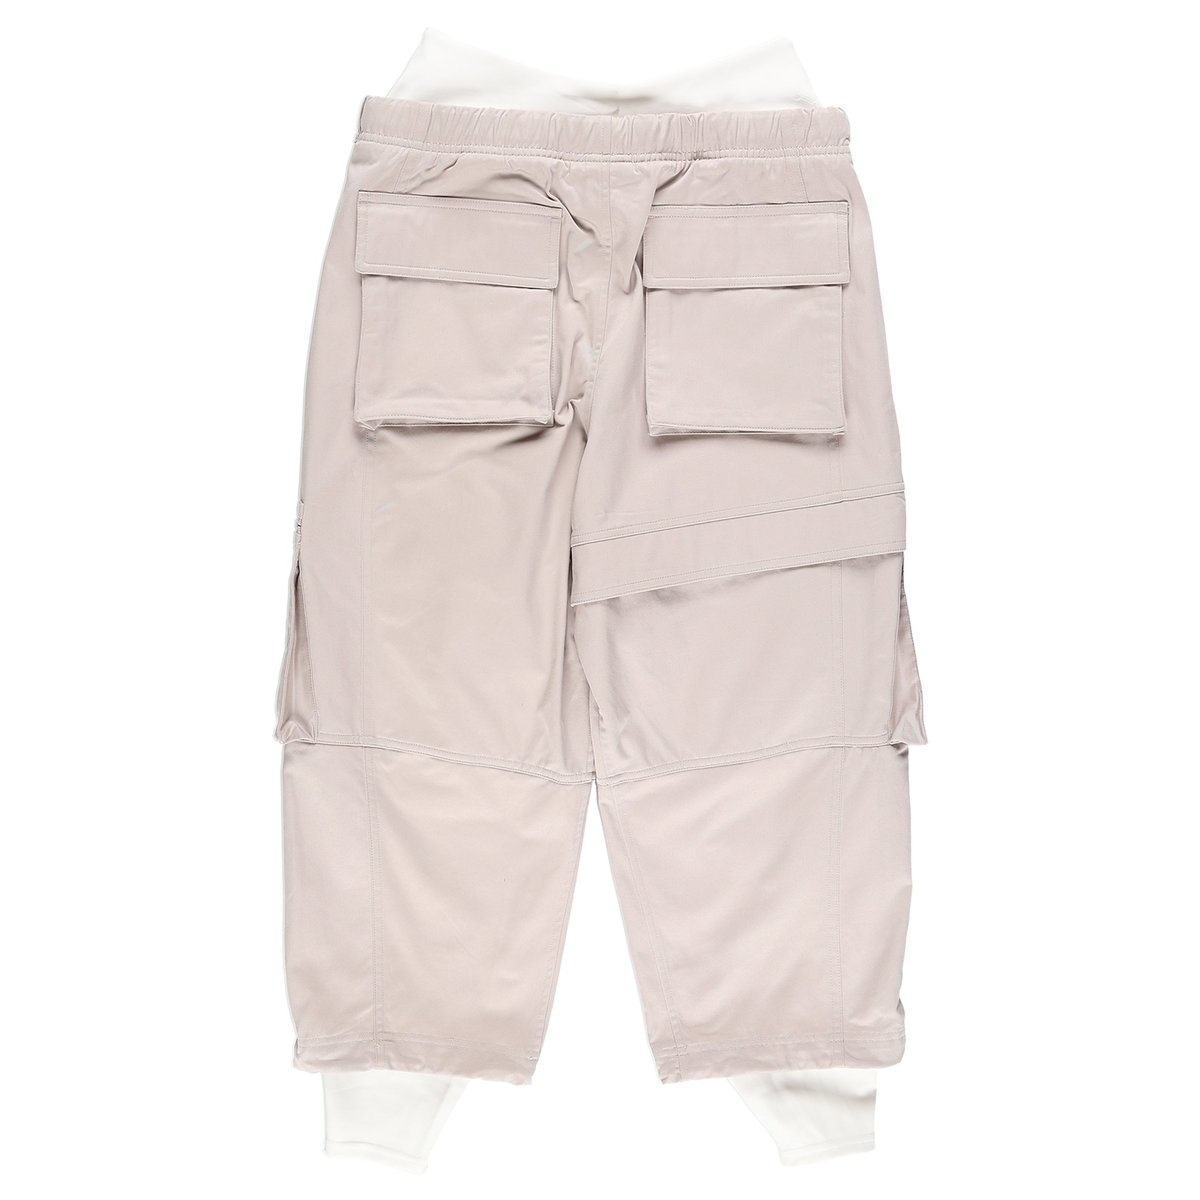 779419e92bf10 Nike NRG ACG Woven Cargo Pants - Moon Particle/Summit White | Garmentory